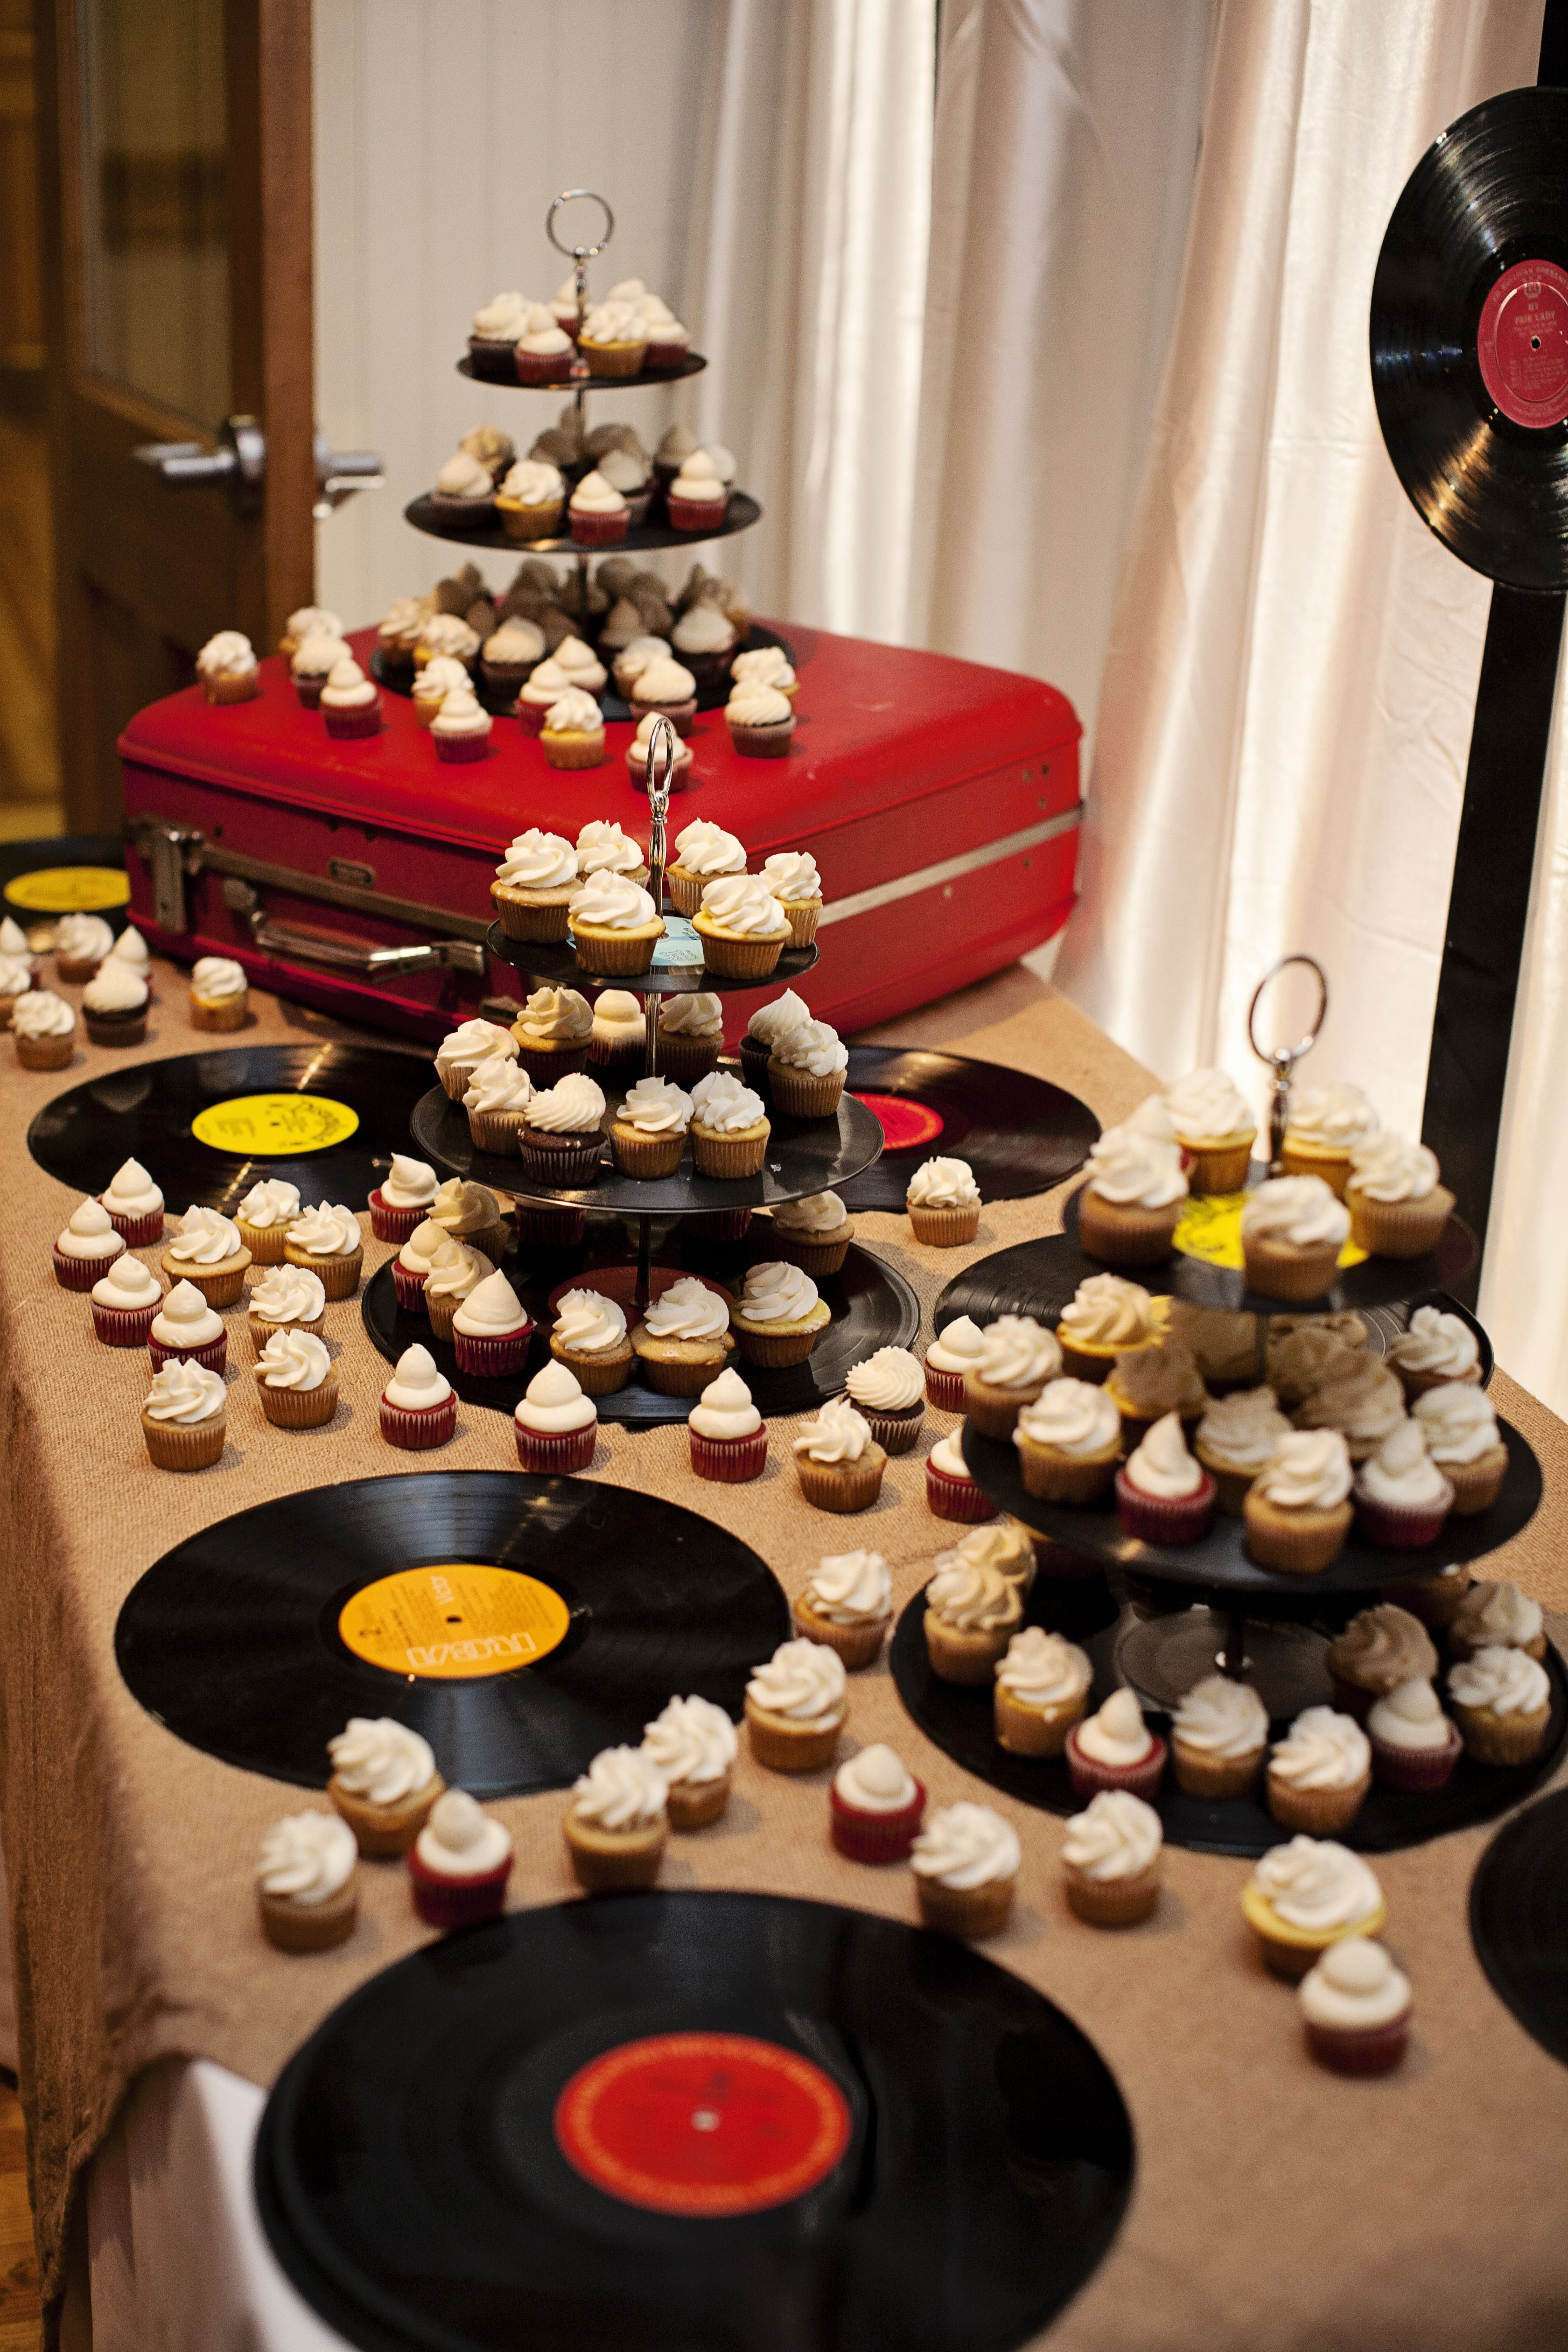 Cupcake grooms cake with record cake stands. Baby shower